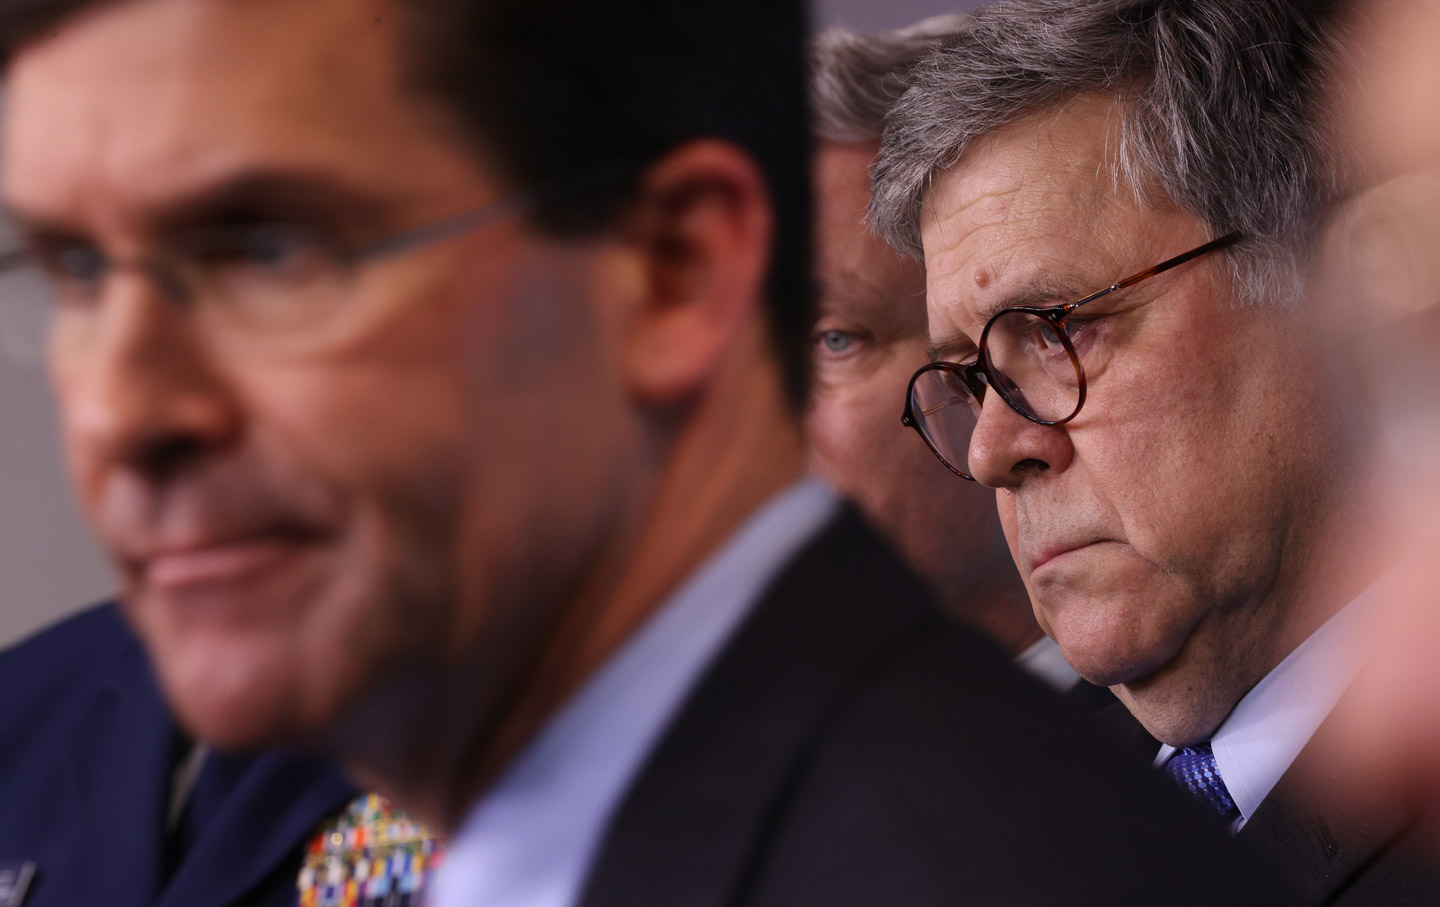 william-barr-press-conference-portrait-gt-img